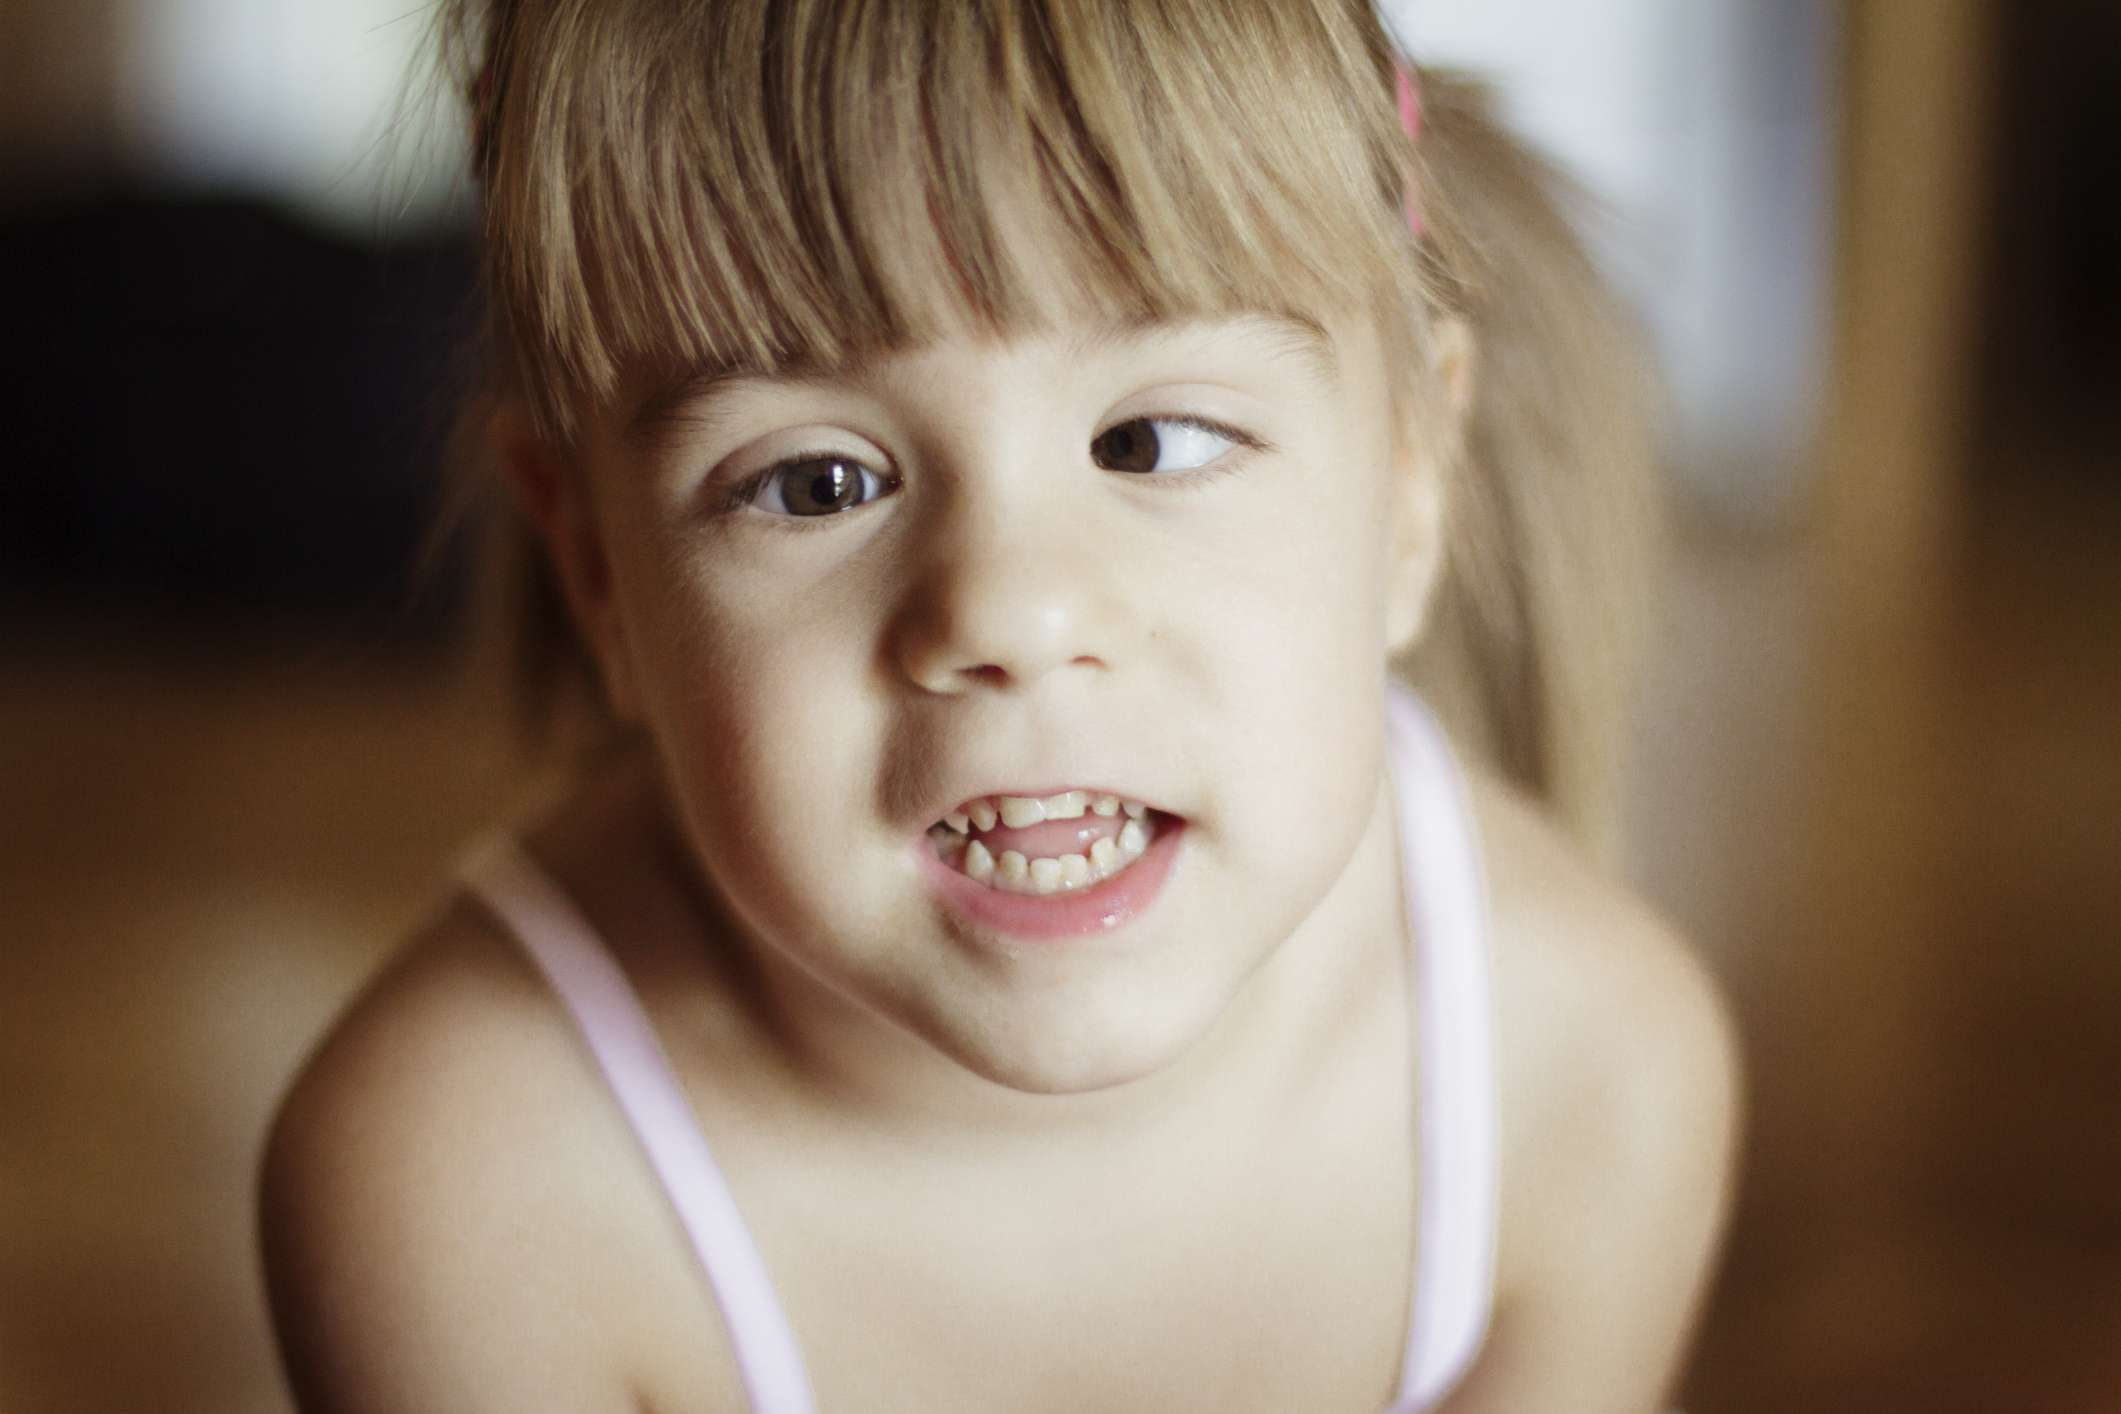 Child with strabismus (squint)